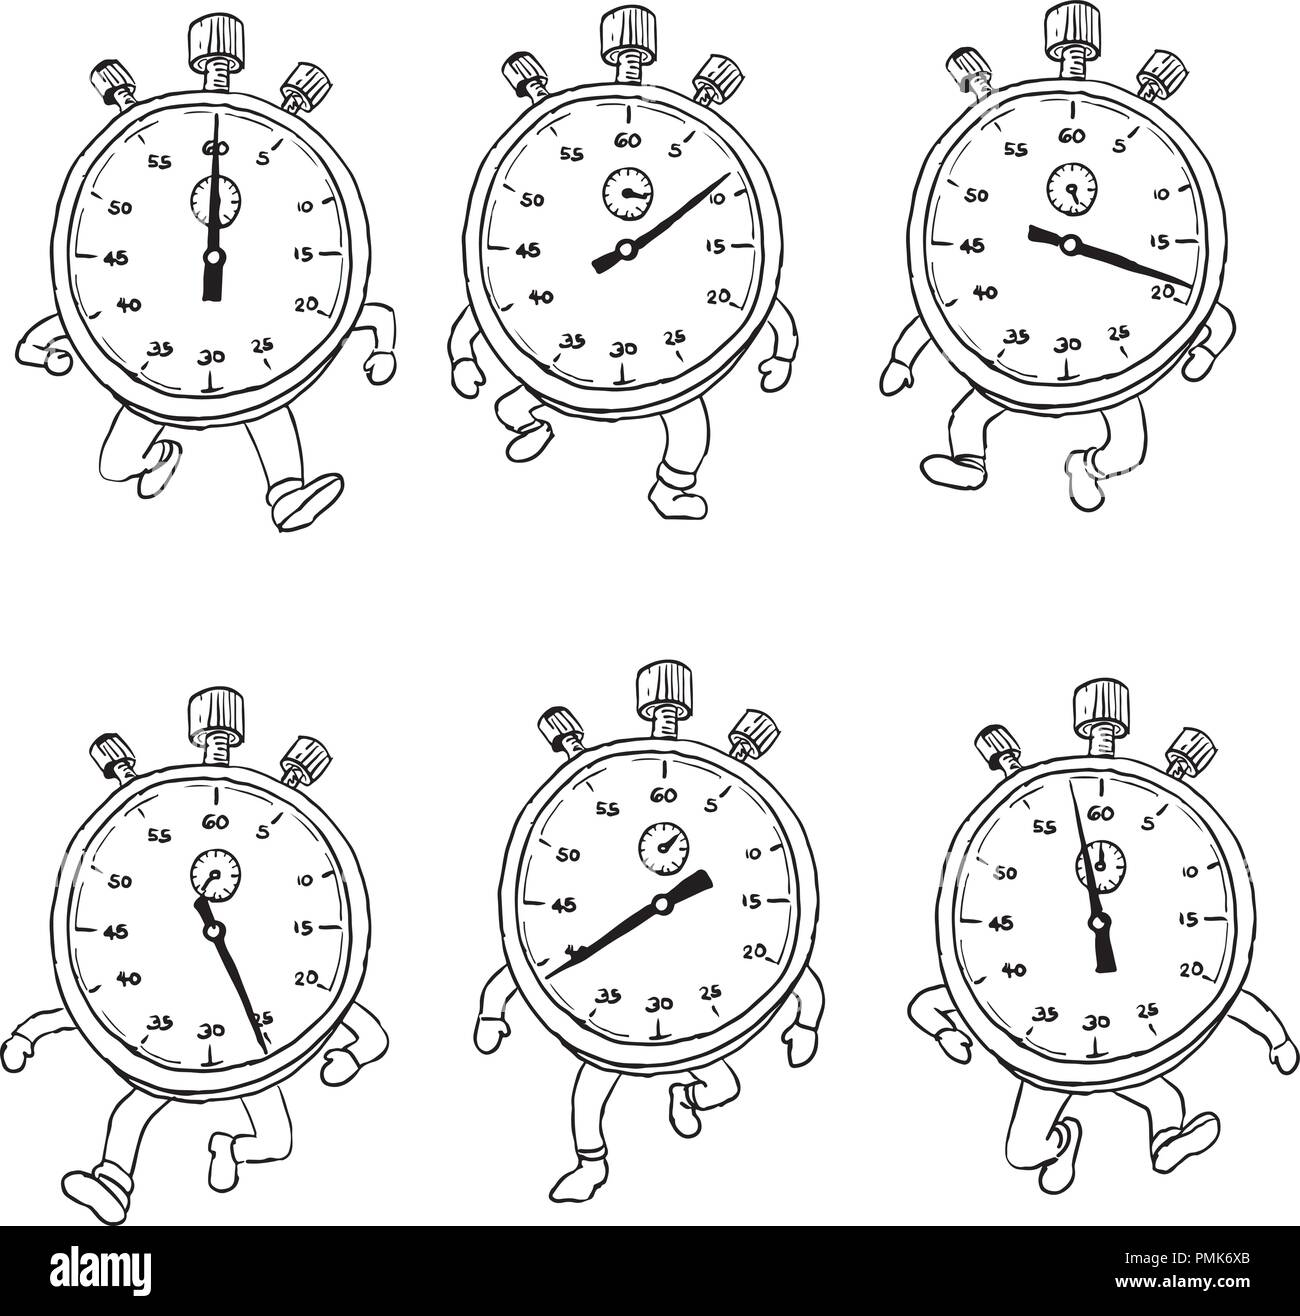 Drawing sketch style illustration of a sequence or run cycle of a stopwatch cartoon character with legs running viewed from front on isolated backgrou - Stock Image